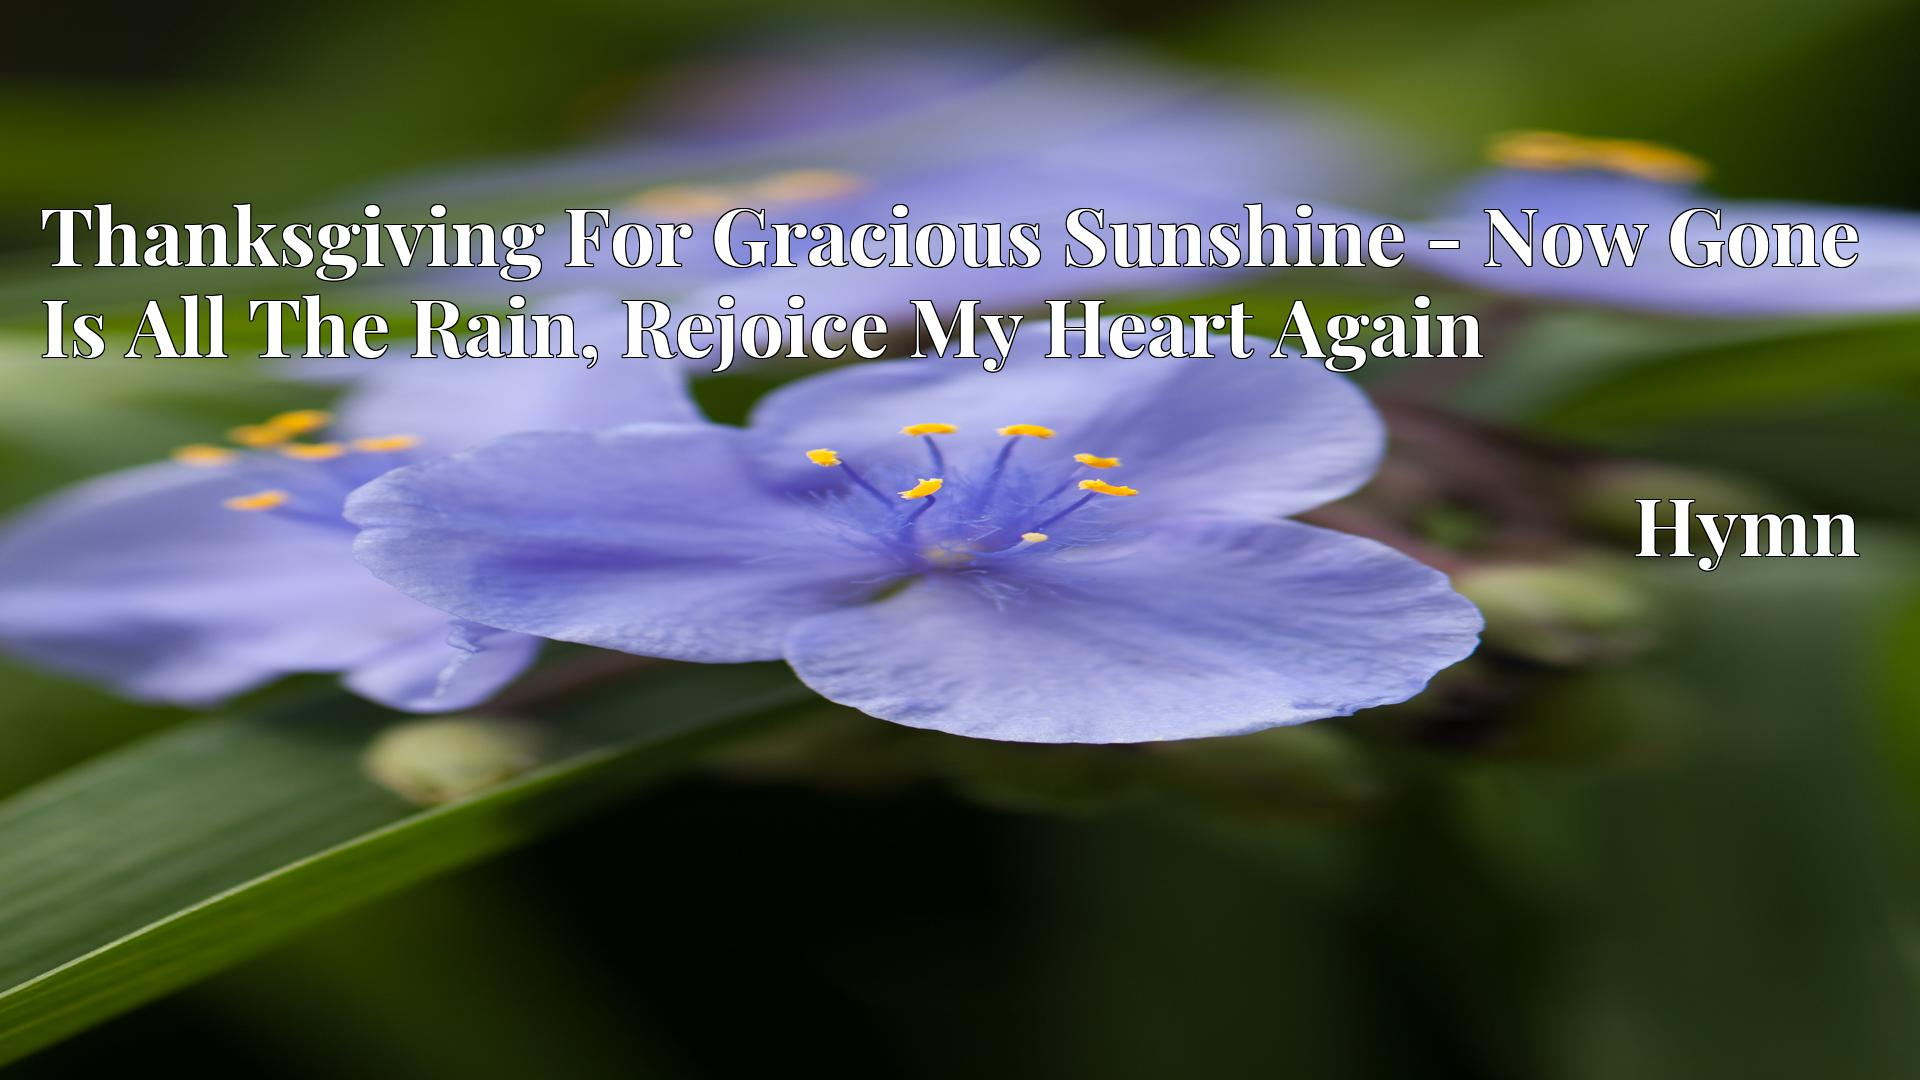 Thanksgiving For Gracious Sunshine - Now Gone Is All The Rain, Rejoice My Heart Again - Hymn